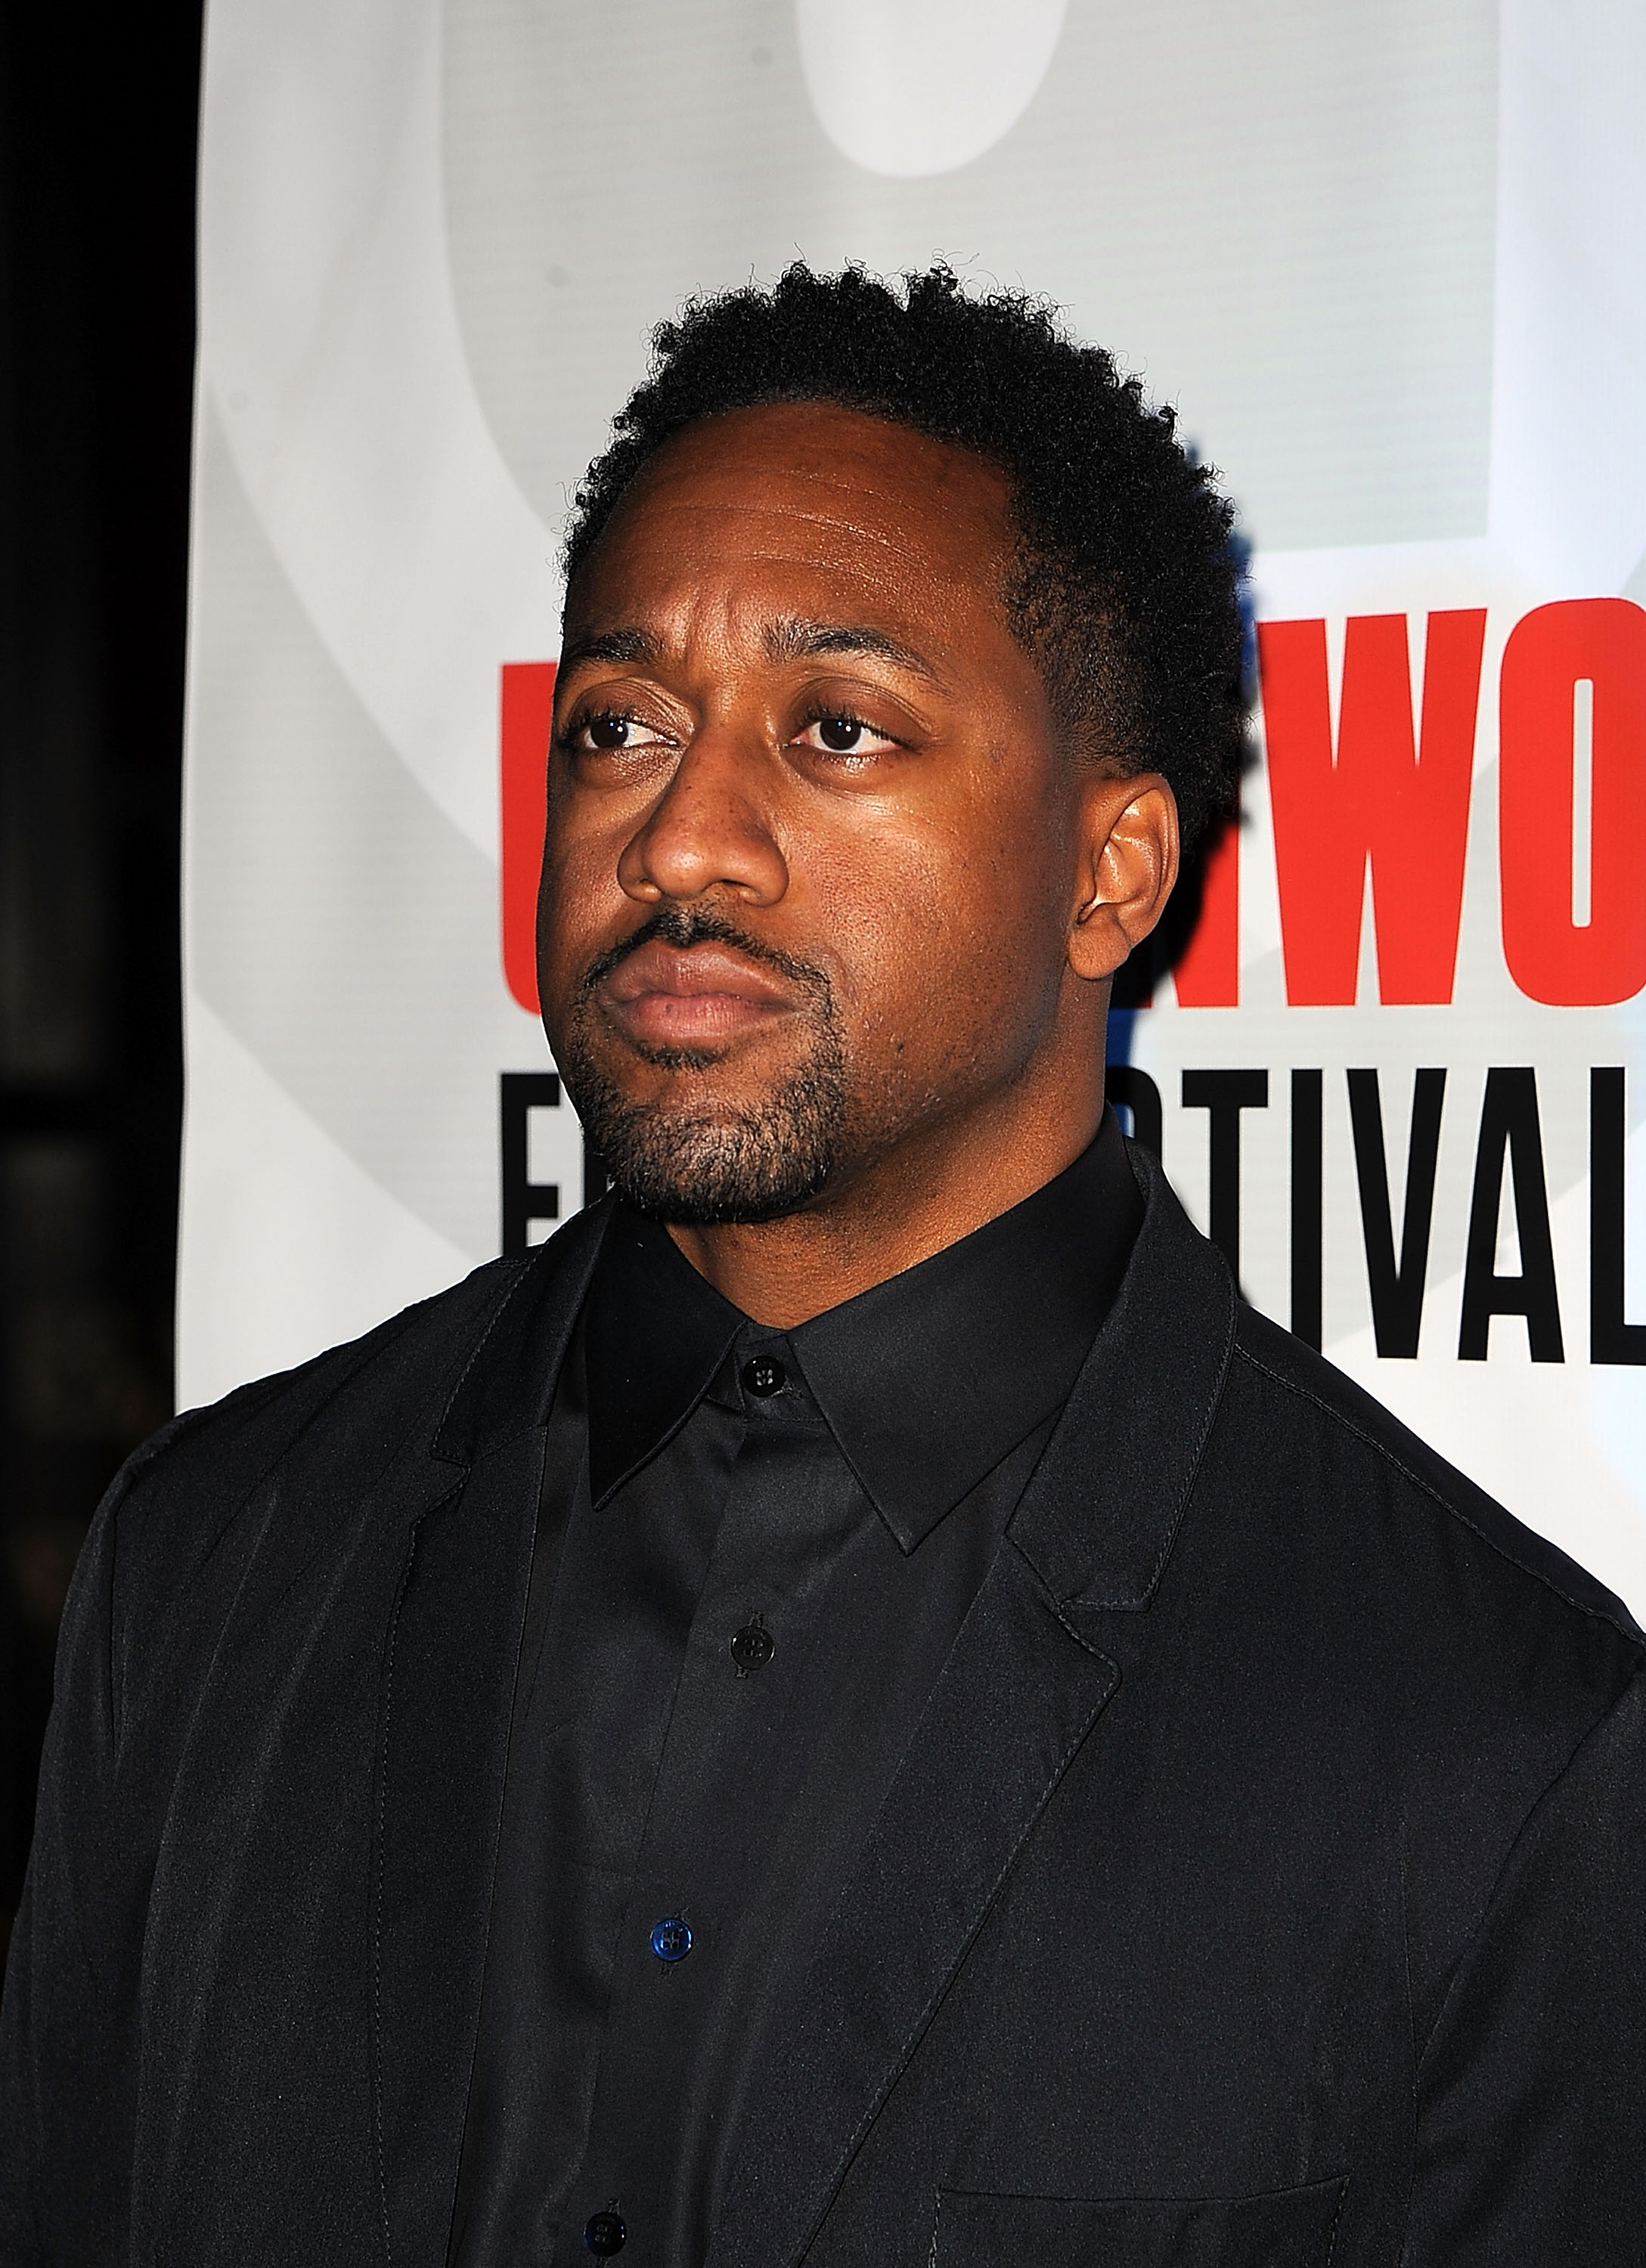 Jaleel White on September 23, 2015 in New York City | Photo: Getty Images